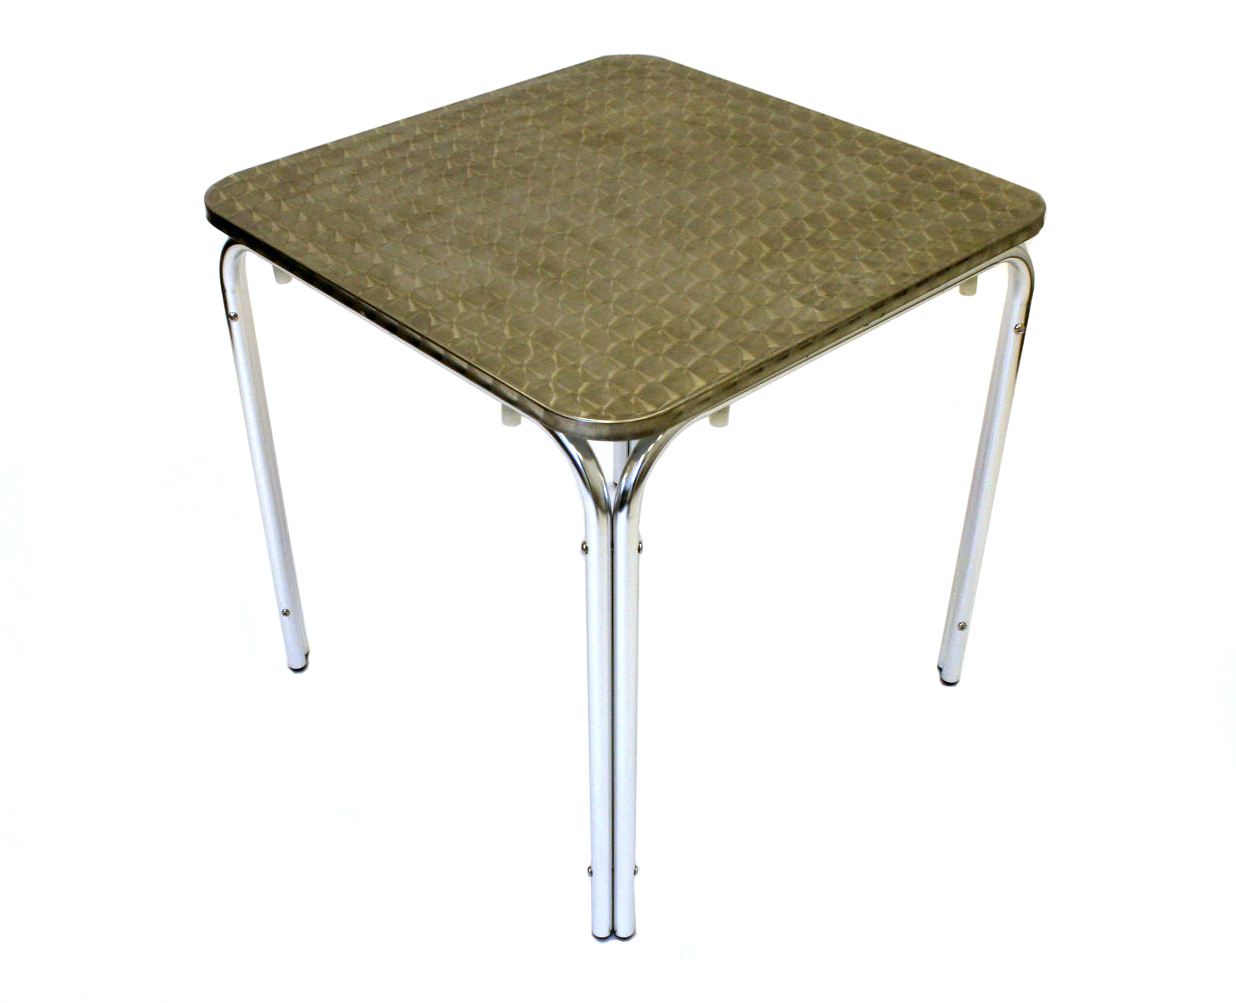 Square Aluminium Table - 80cm Diameter Rolled Edge - BE Furniture Sales